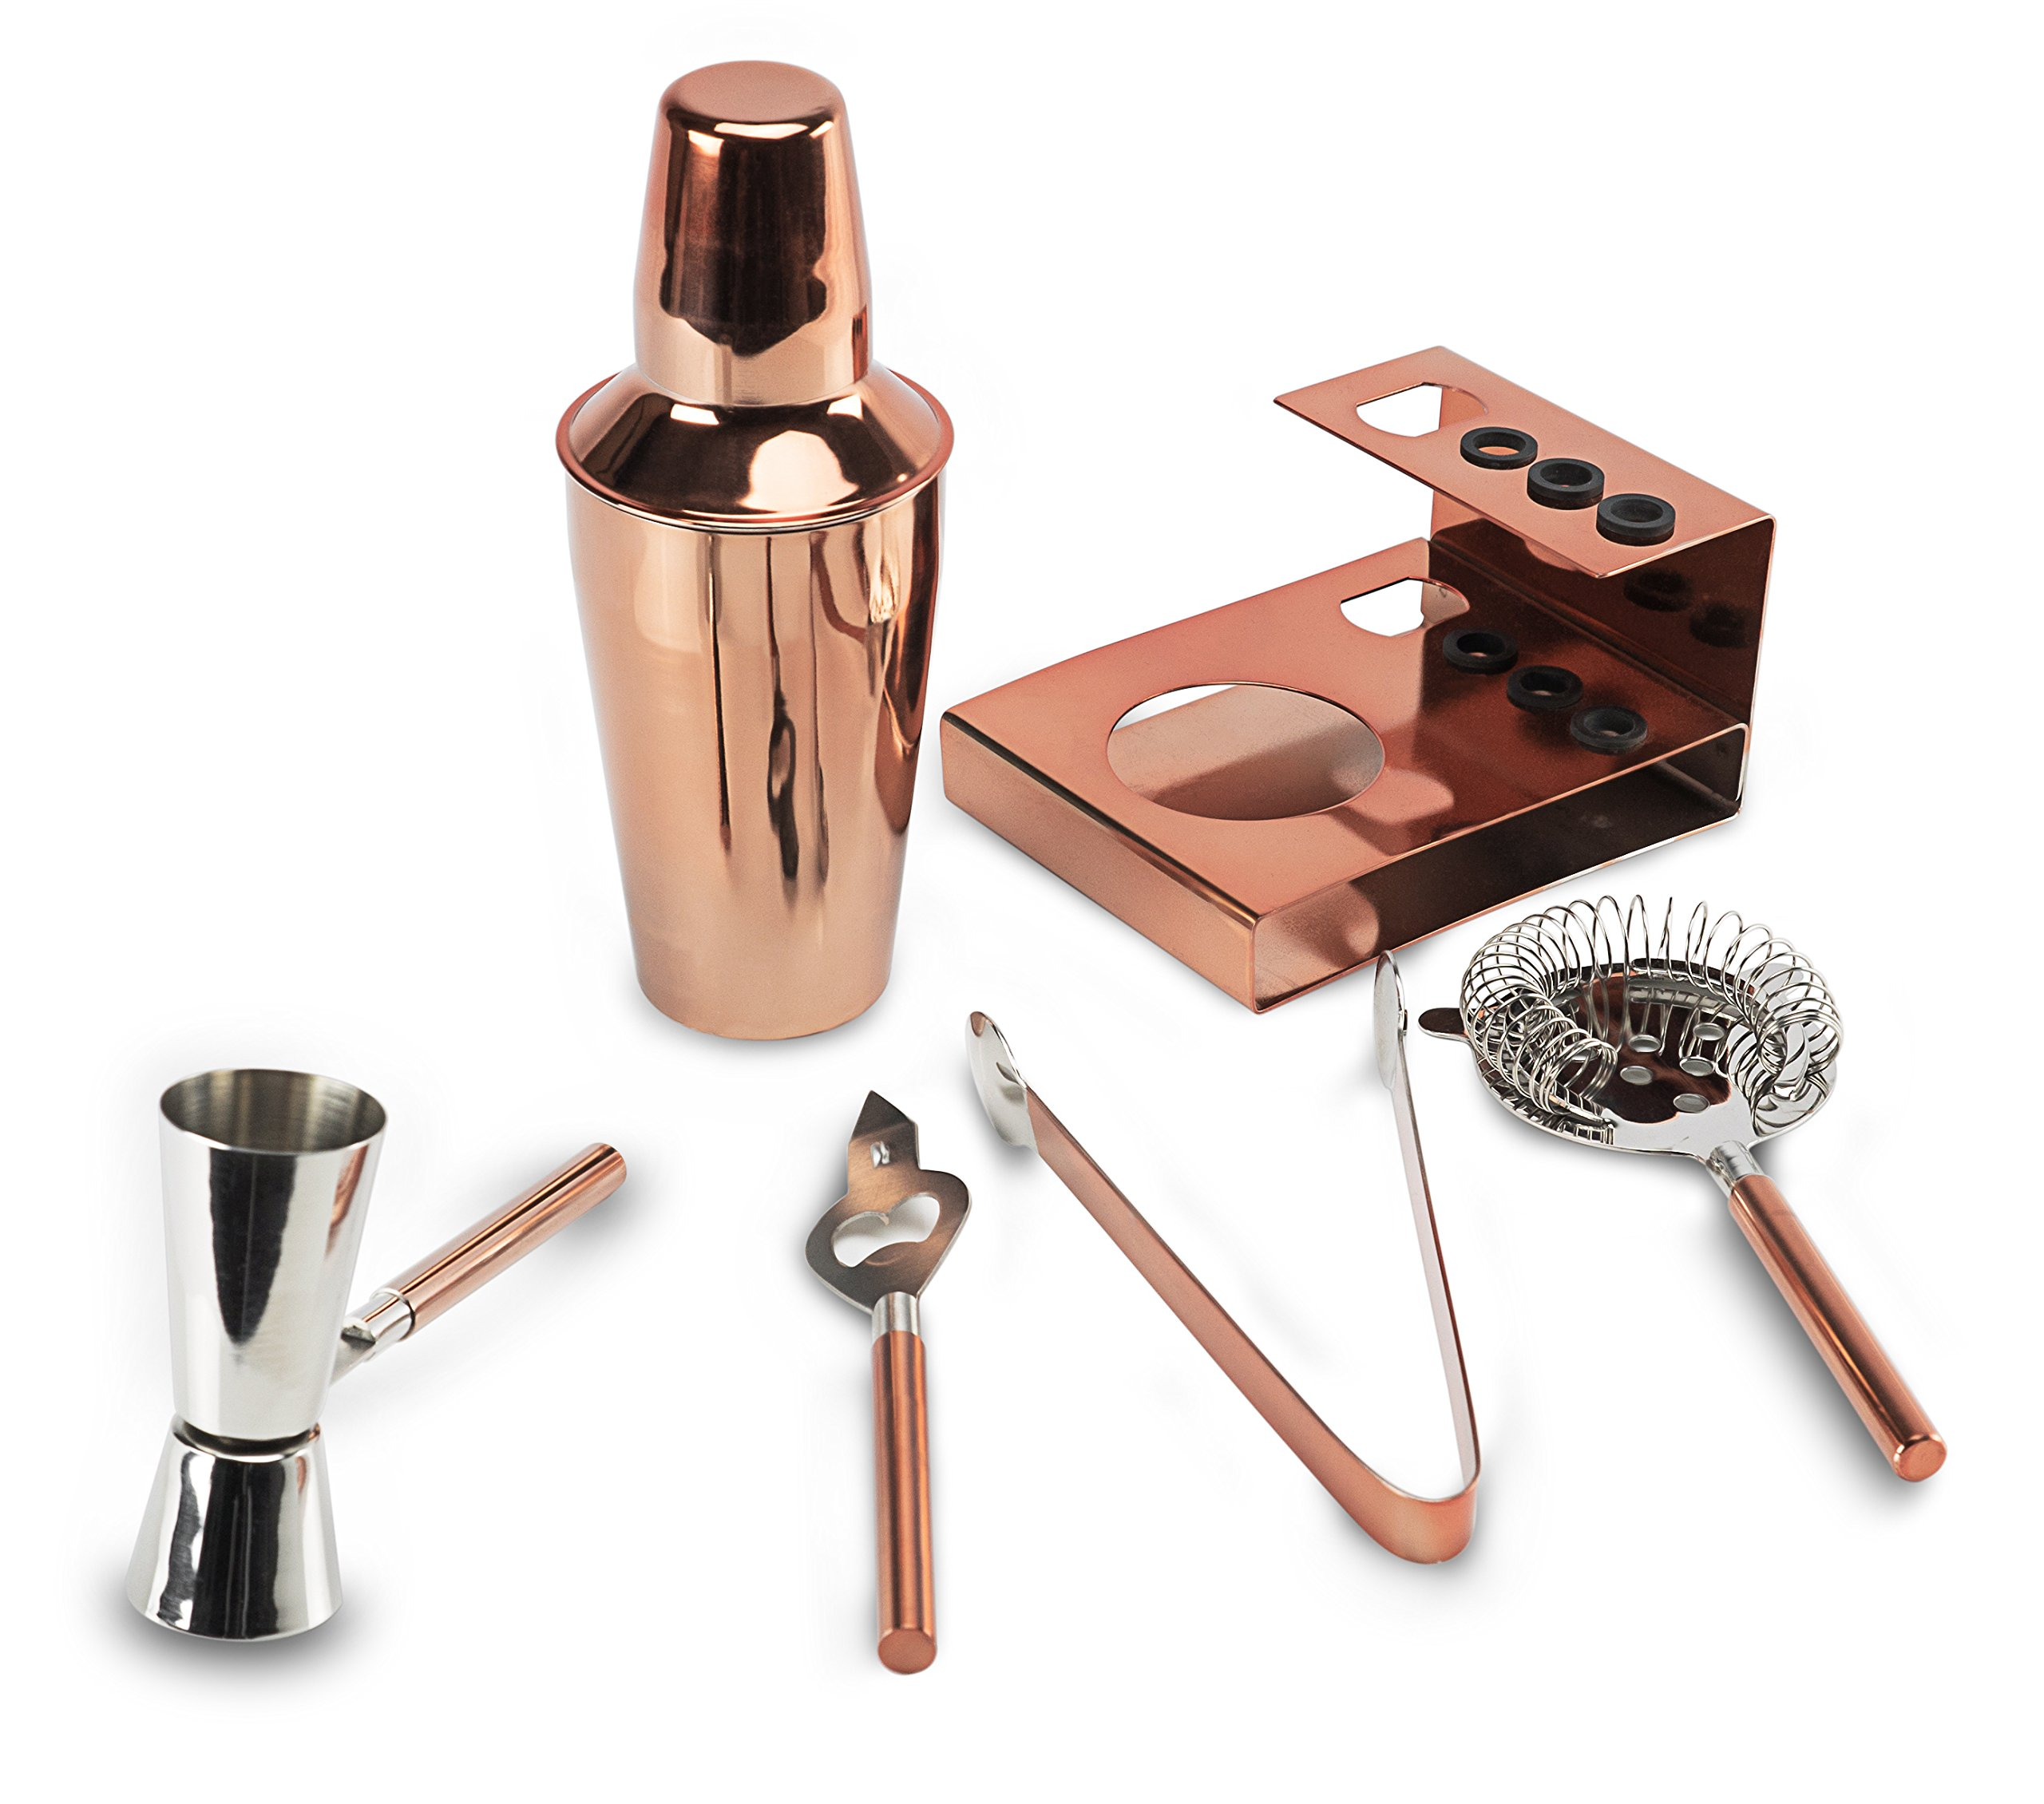 Miko Premium Cocktail Bar Set, High Grade Stainless Steel 6 Piece Set, Made In India (Rose Gold) by Miko (Image #2)